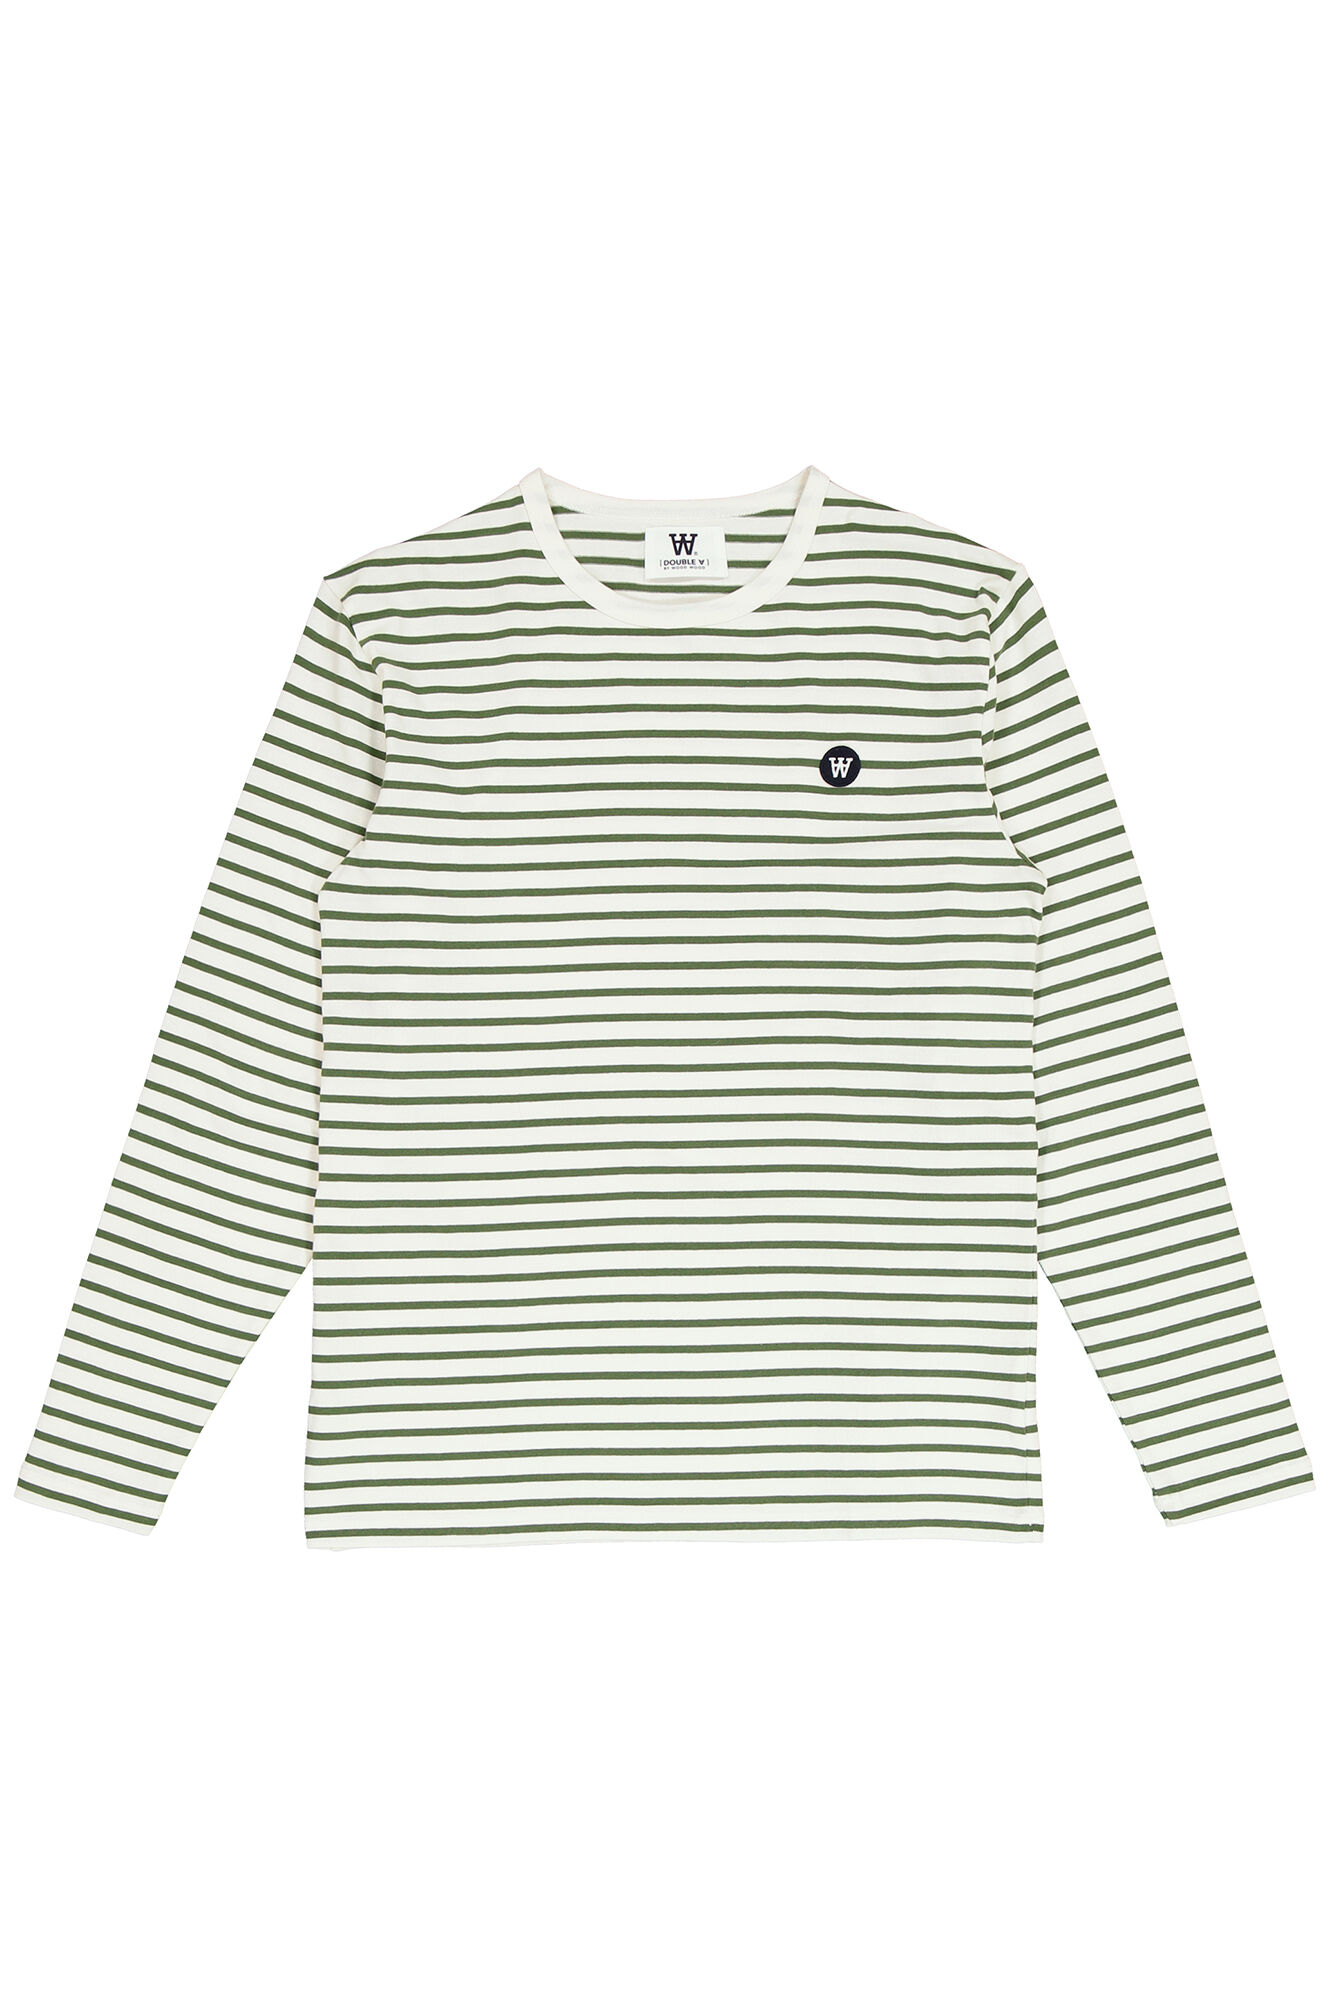 Mel long sleeve 10915404-2323, OFF-WHITE/GREEN STRIPES